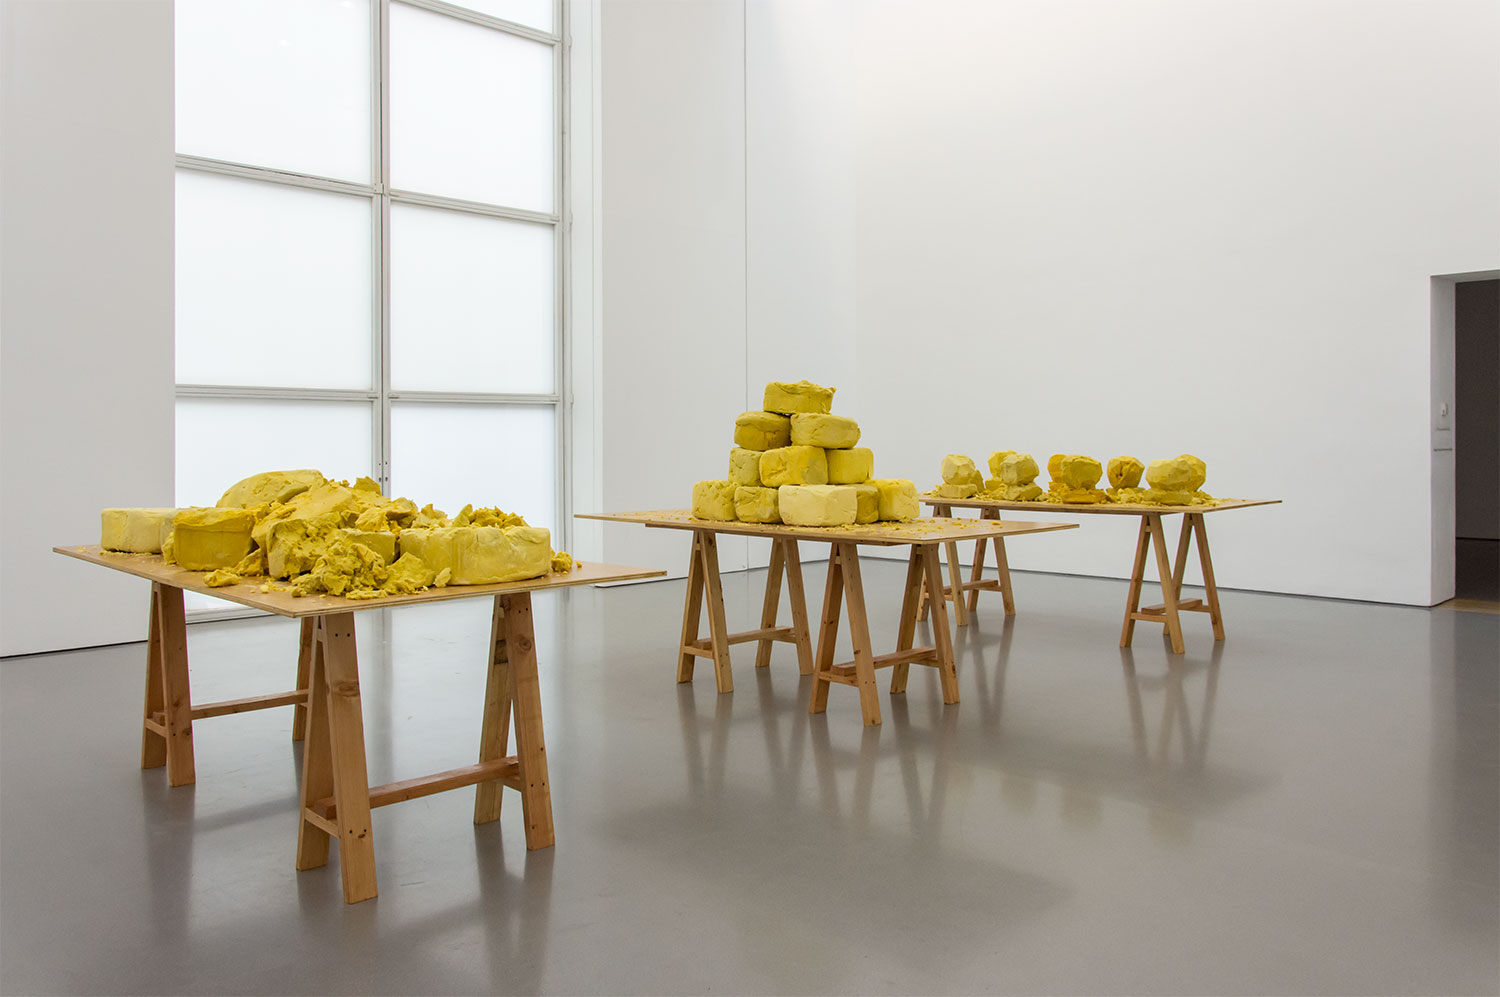 Rashid Johnson, Shea Butter Three Ways, 2019, shea butter, tables